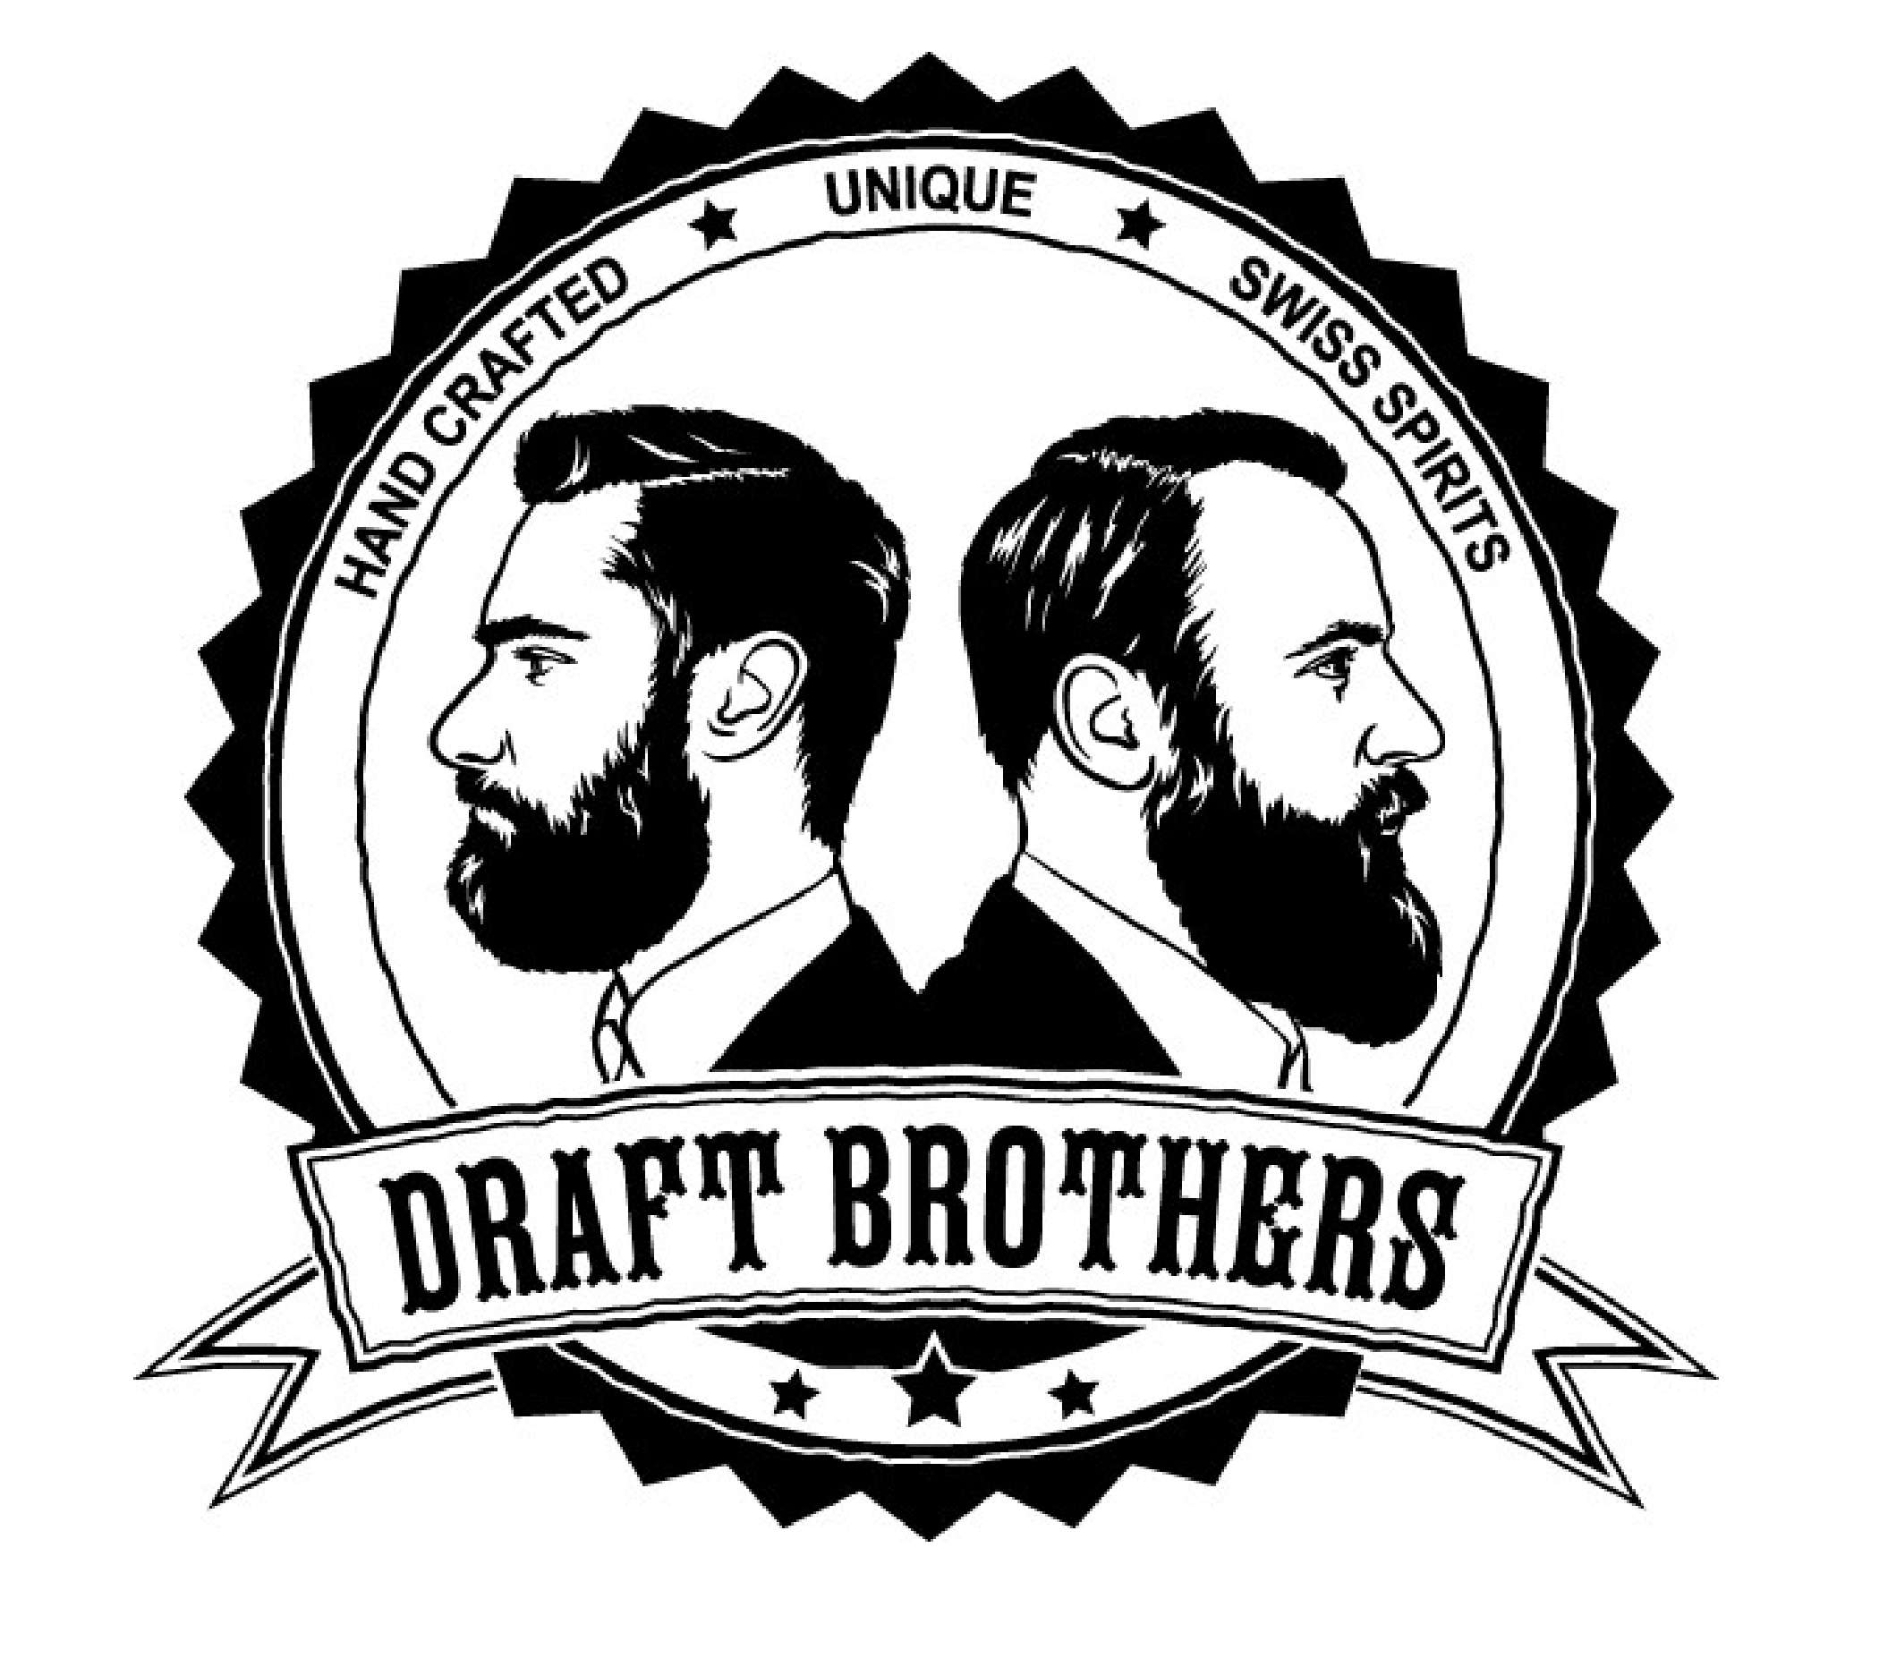 HAND CRAFTED UNIQUE SWISS SPIRITS DRAFT BROTHERS